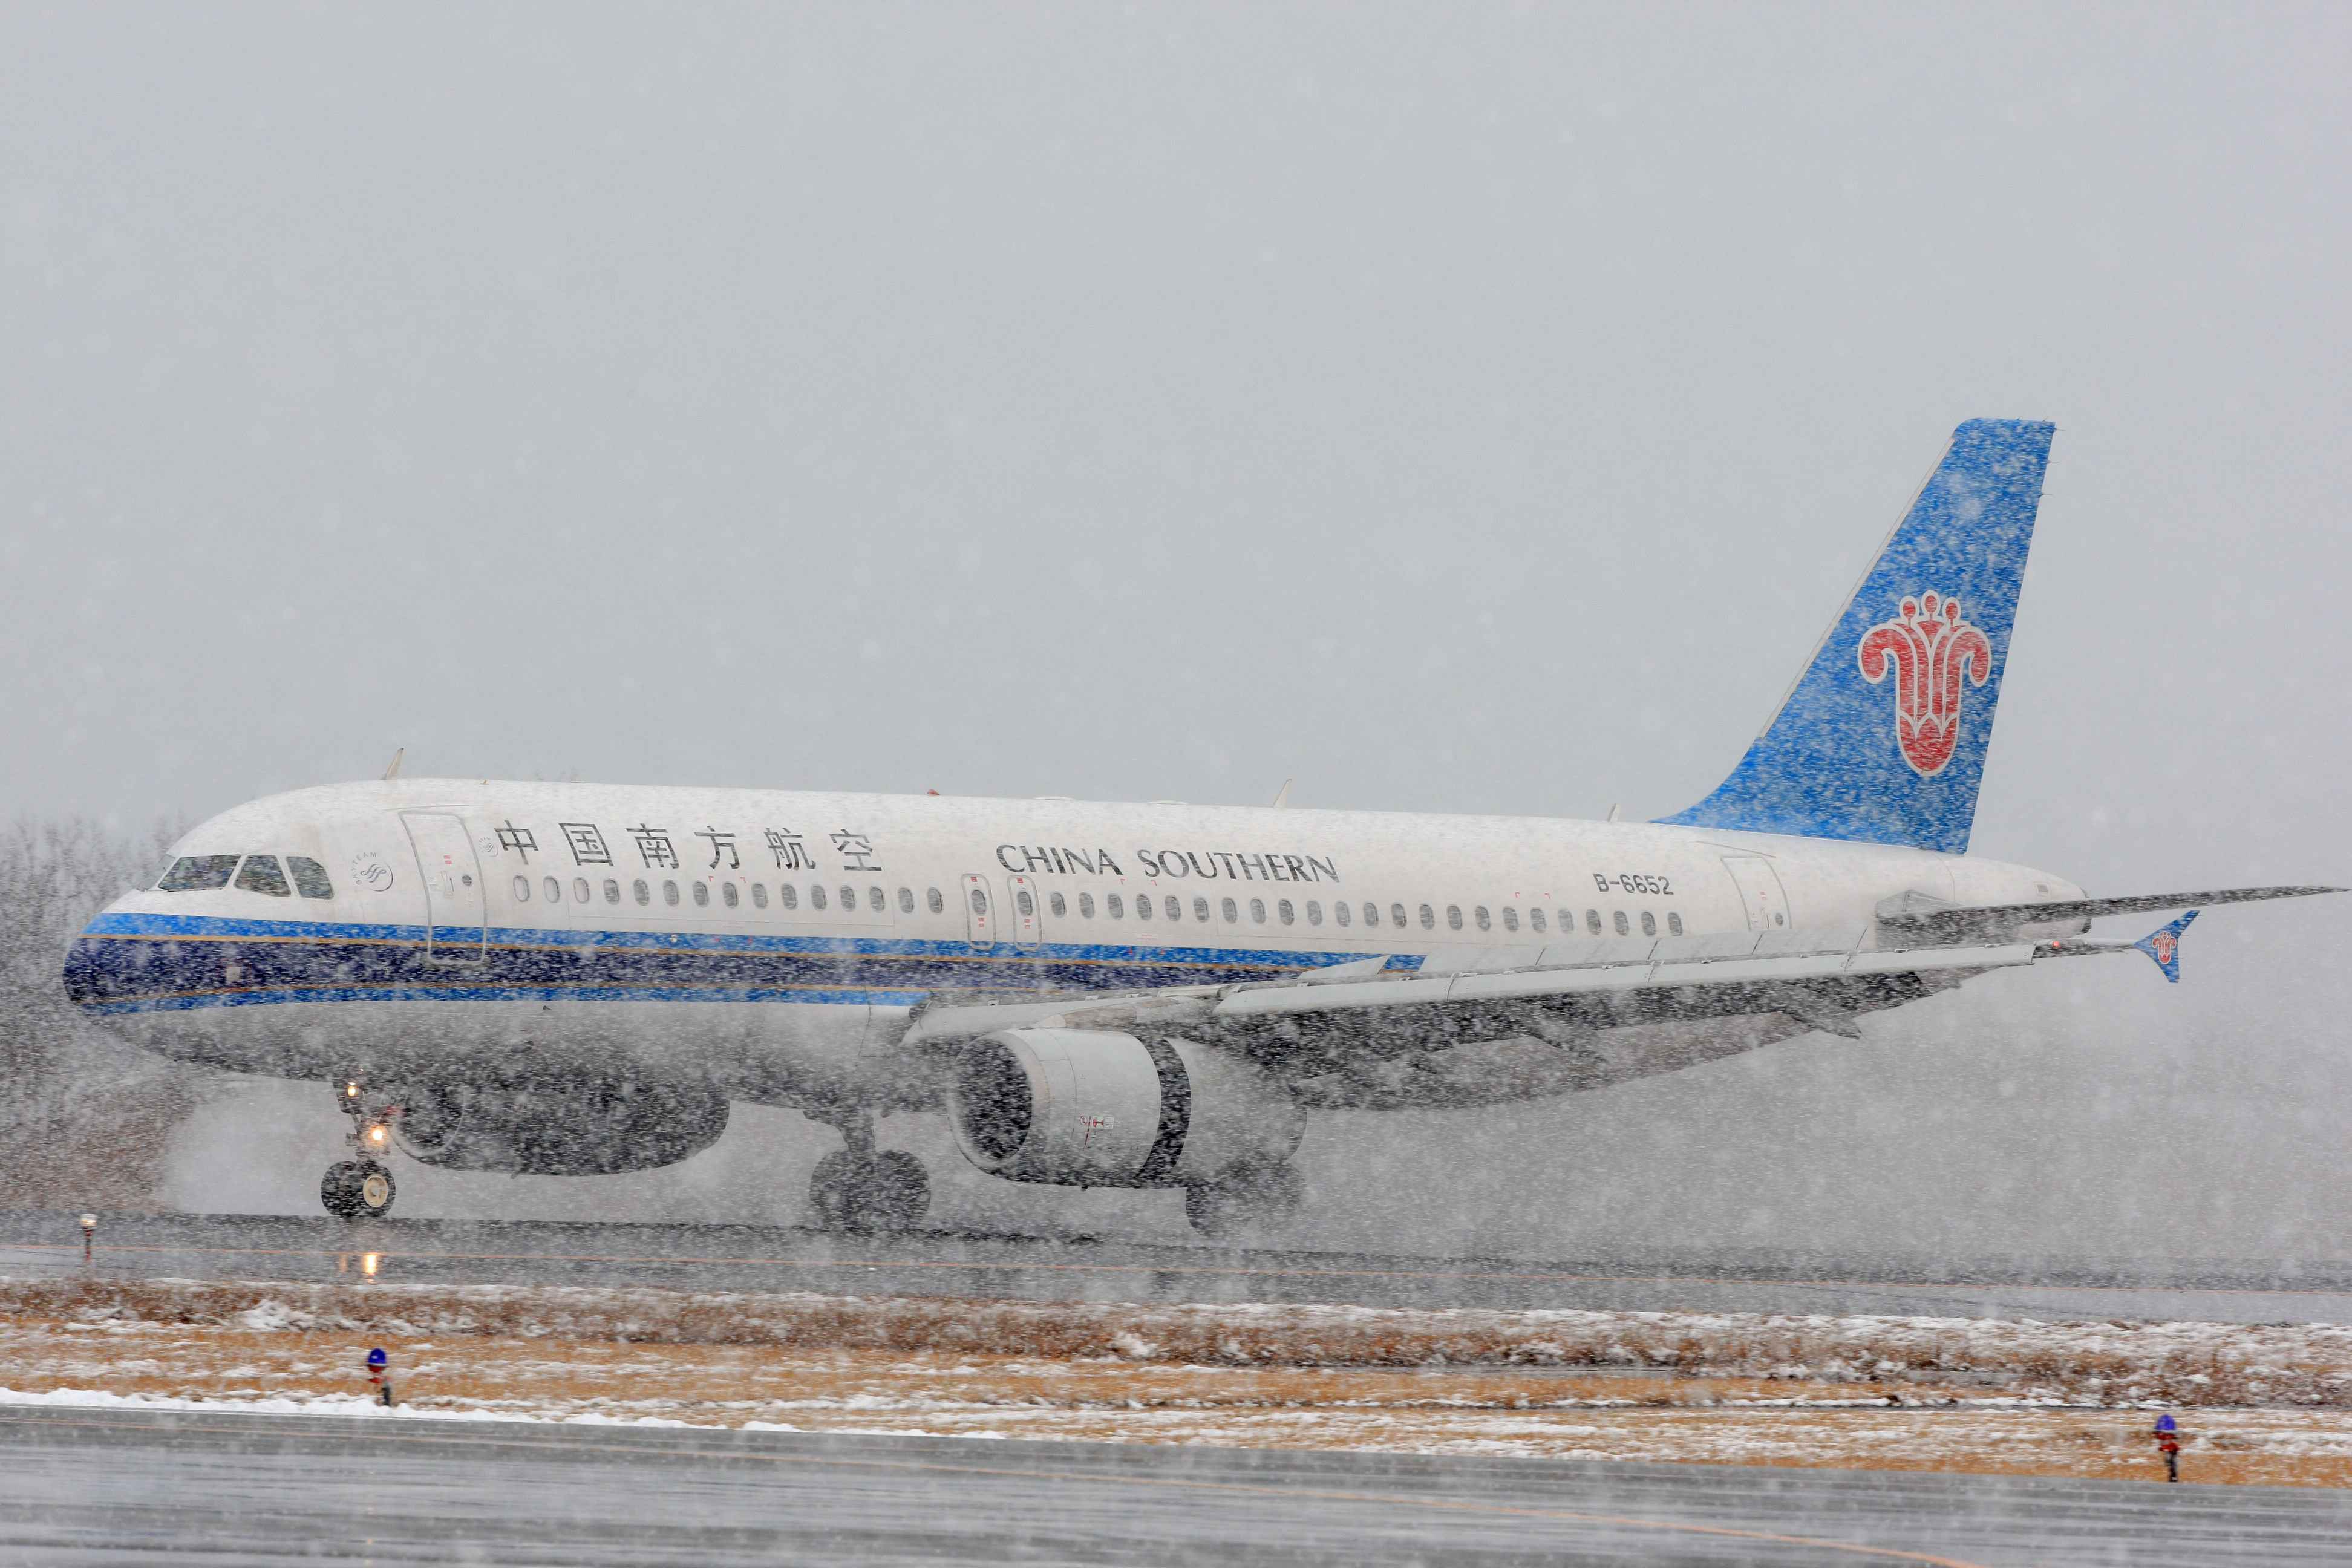 china southern airlines View the quality ratings for china southern airlines onboard products, food & beverages and staff service, and ground service standards for china southern airlines.